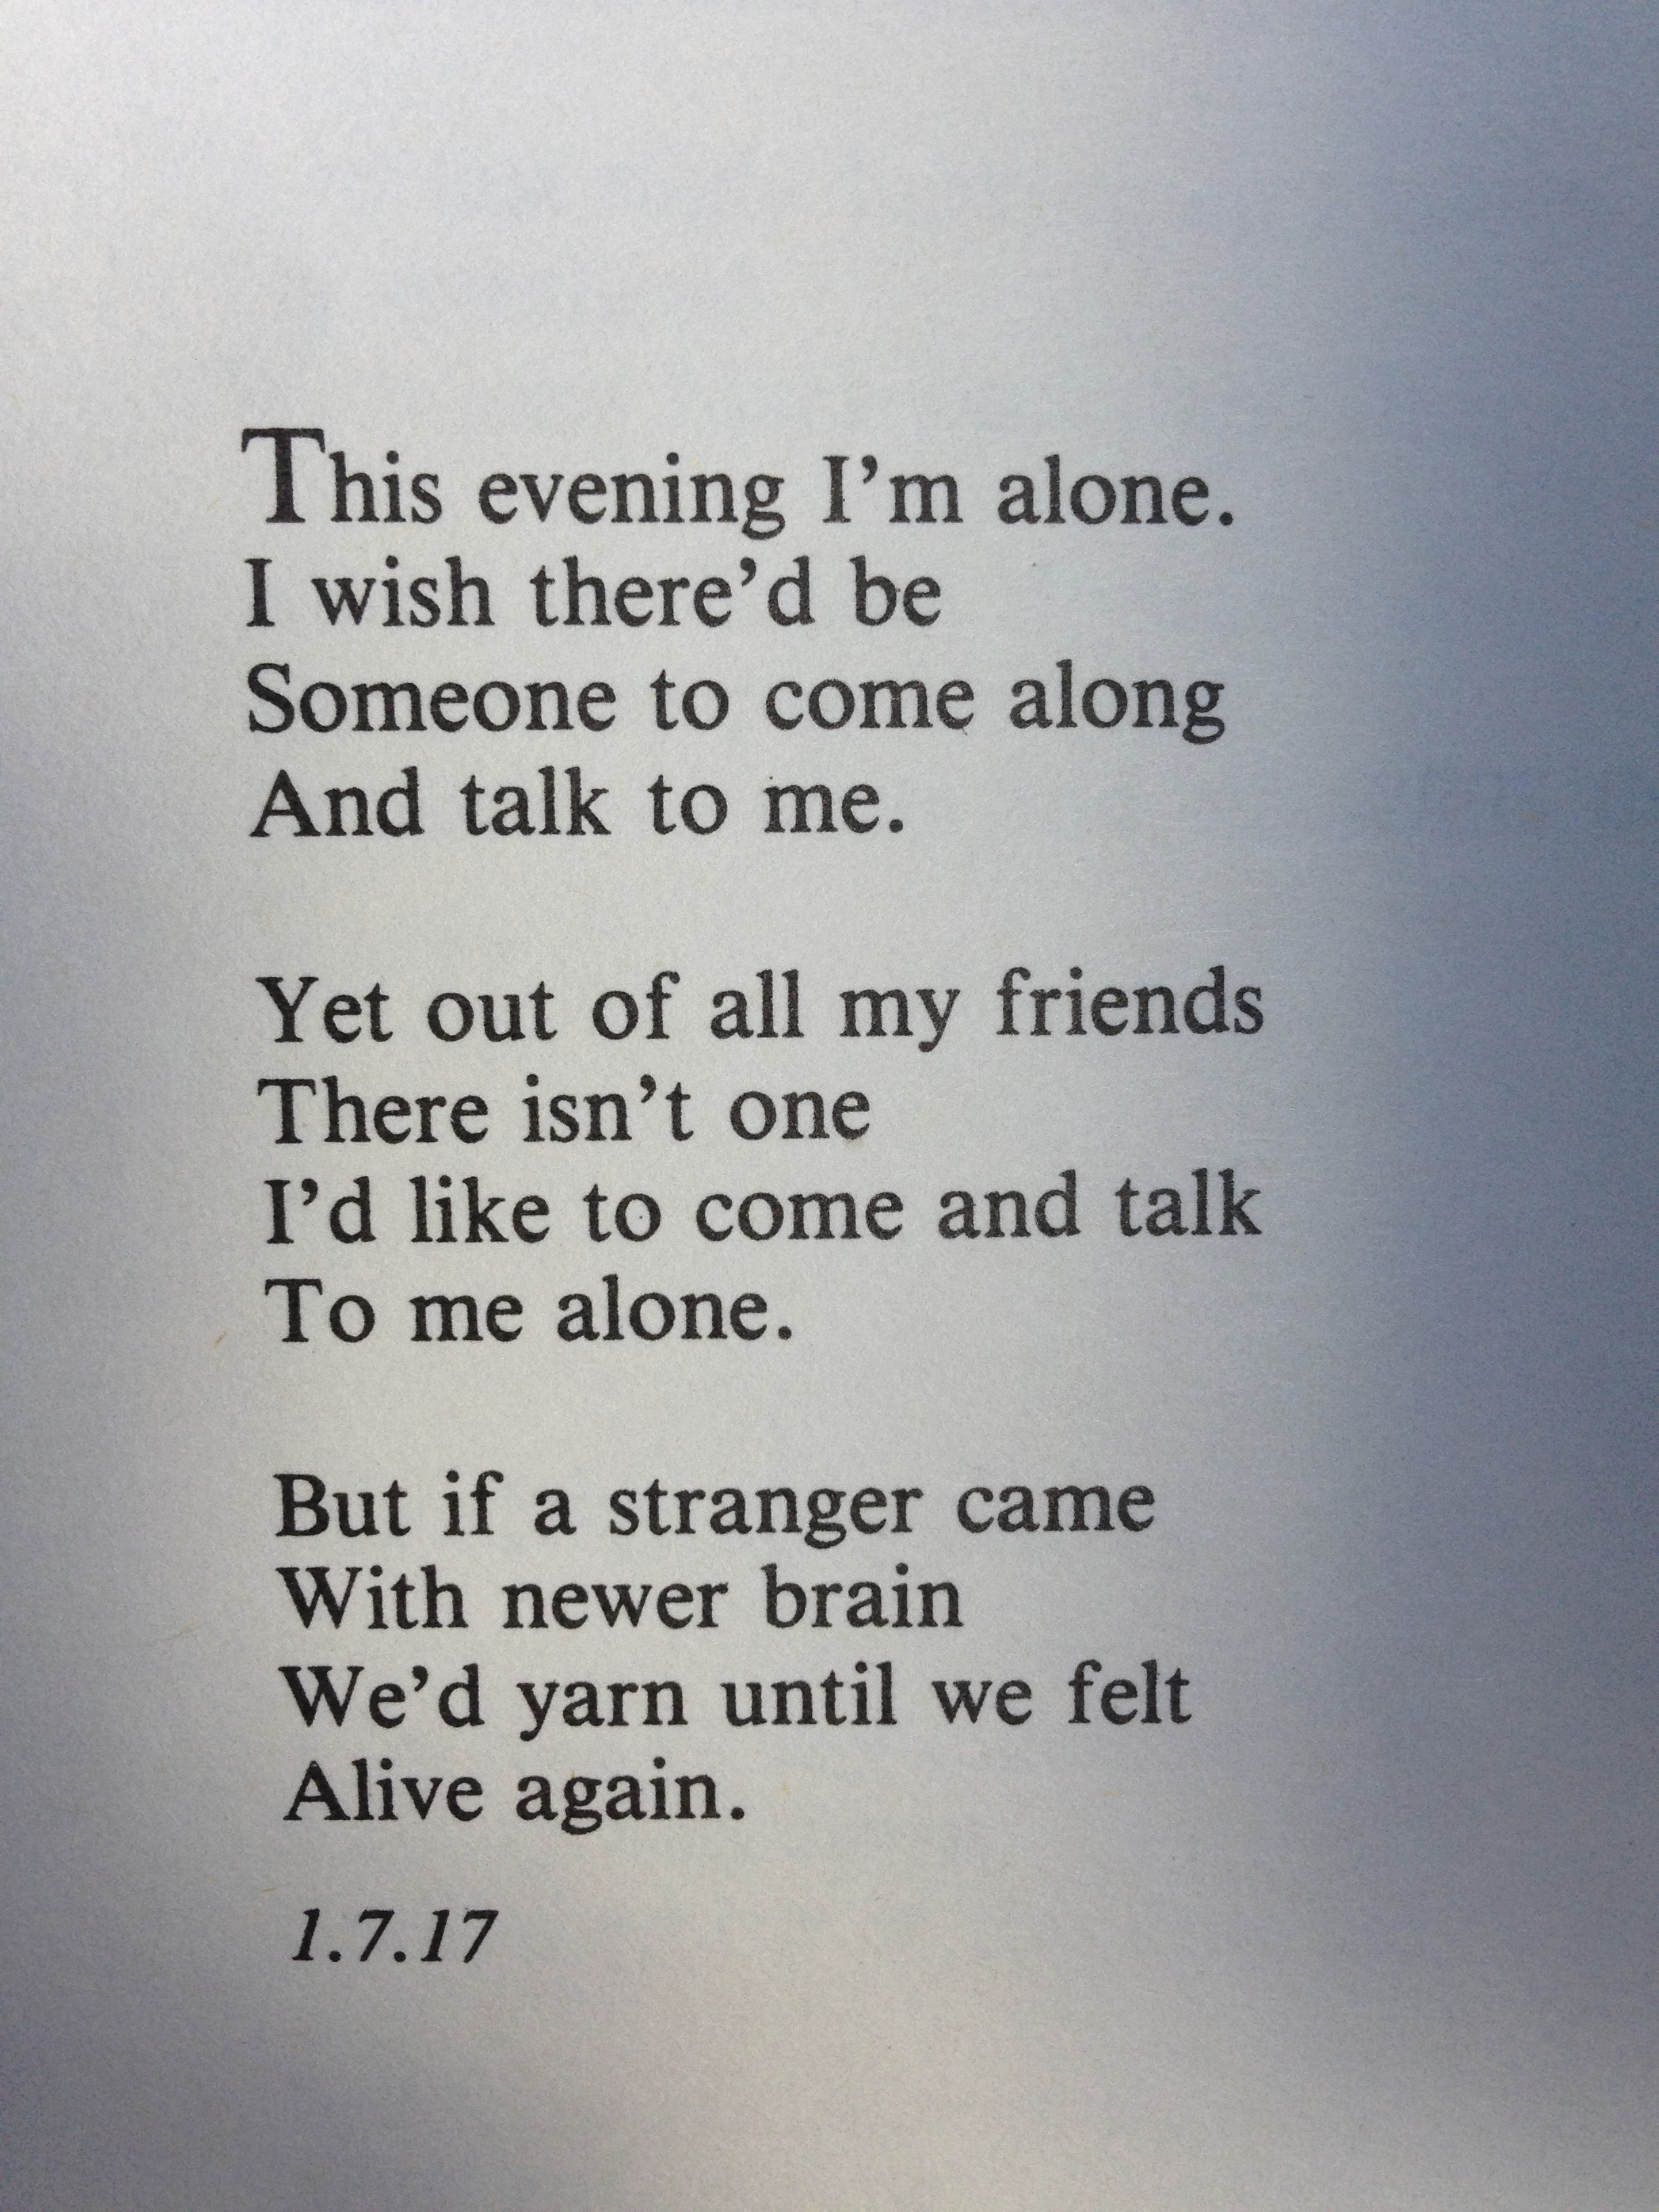 Sad poems about being alone